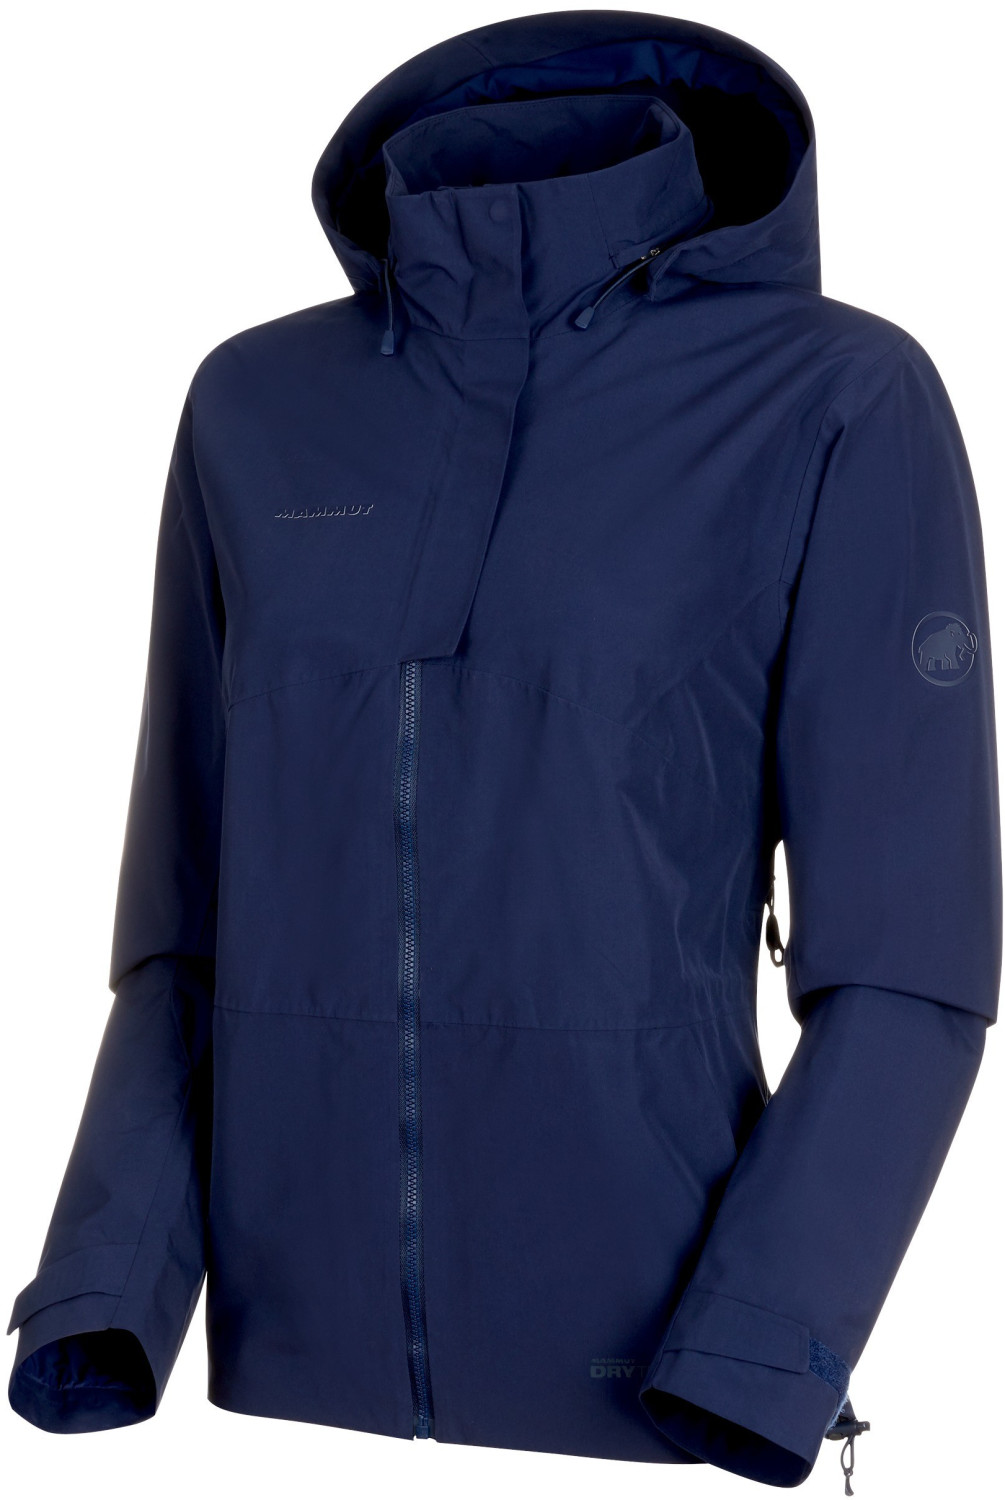 Mammut Trovat Hardshell-Jacket Hooded Women (1010-26800) peacoat